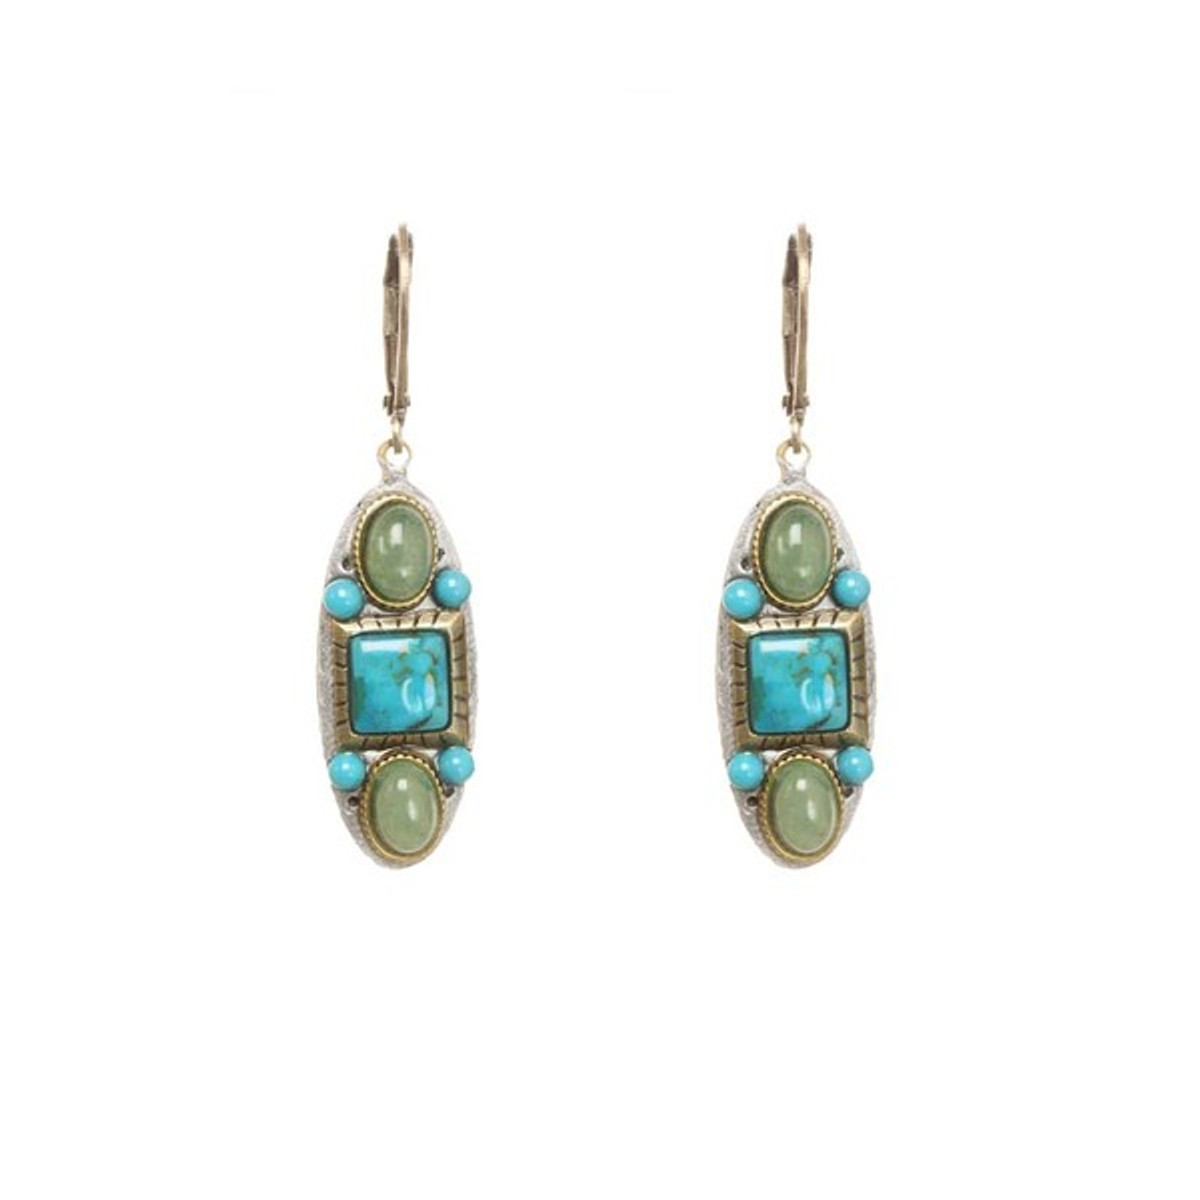 Michal Golan Earrings Nile Turquoise